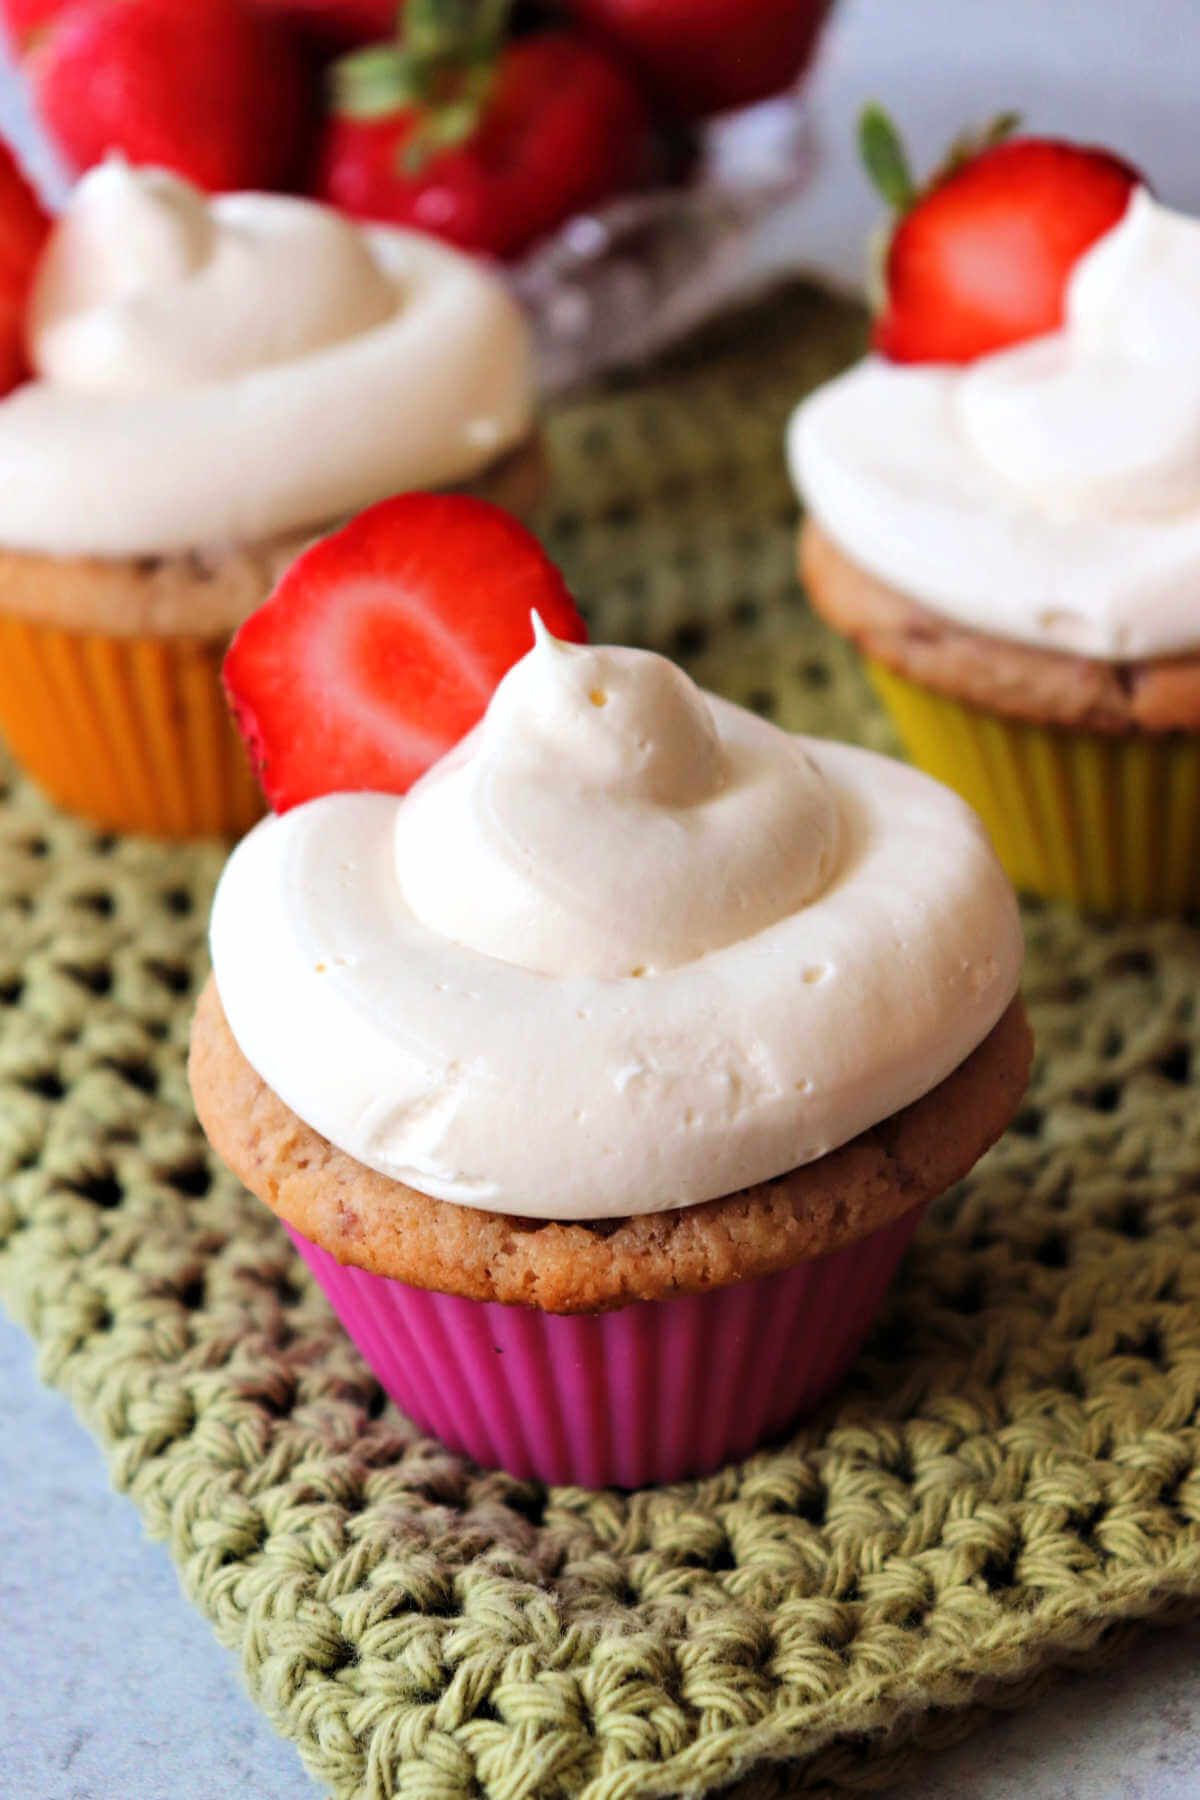 Keto strawberry cupcakes topped with sugar-free cream cheese frosting.